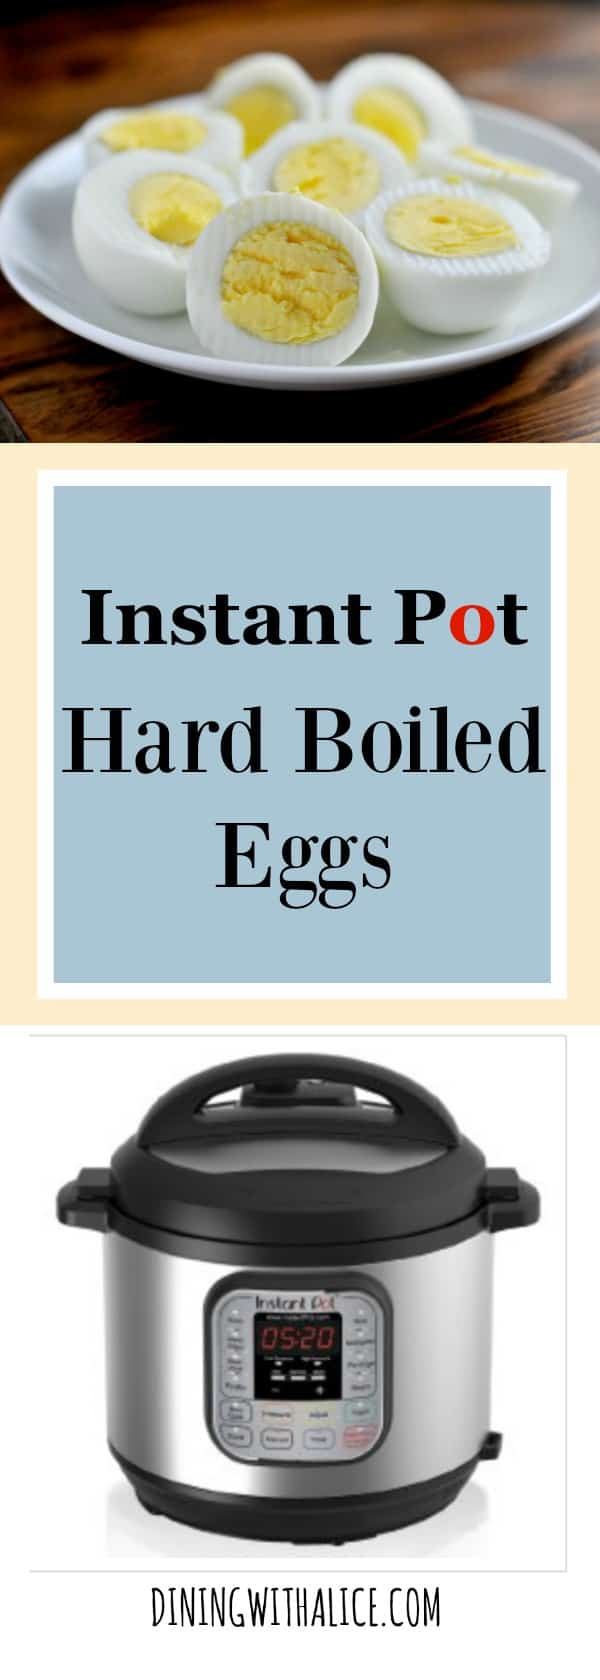 Instant Pot Hard Boiled Eggs Easy Recipe Quick Release A simple recipe for making Instant Pot hard boiled eggs. It's an easy way to make big batches of hard boiled eggs and help with meal planning. This easy recipe makes delicious hard boiled eggs perfect for breakfast, lunch or to use in your favorite Egg Salad or Deviled Egg recipes. http://diningwithalice.com/instant-pot/instant-pot-hard-boiled-eggs/